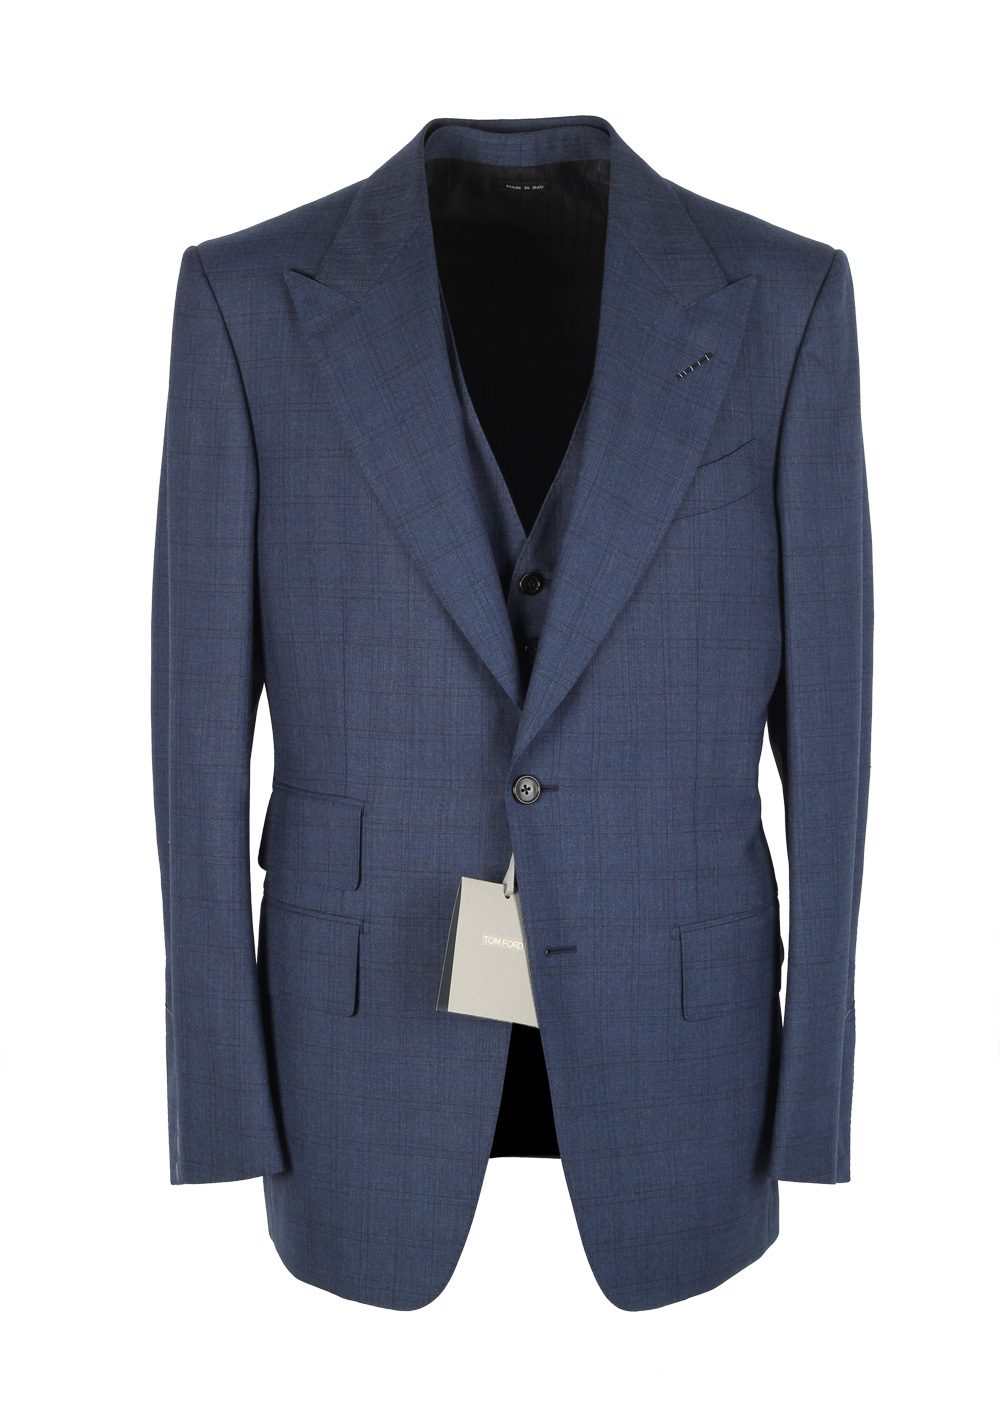 Tom Ford Windsor Checked Blue 3 Piece Suit Size 54 44r U